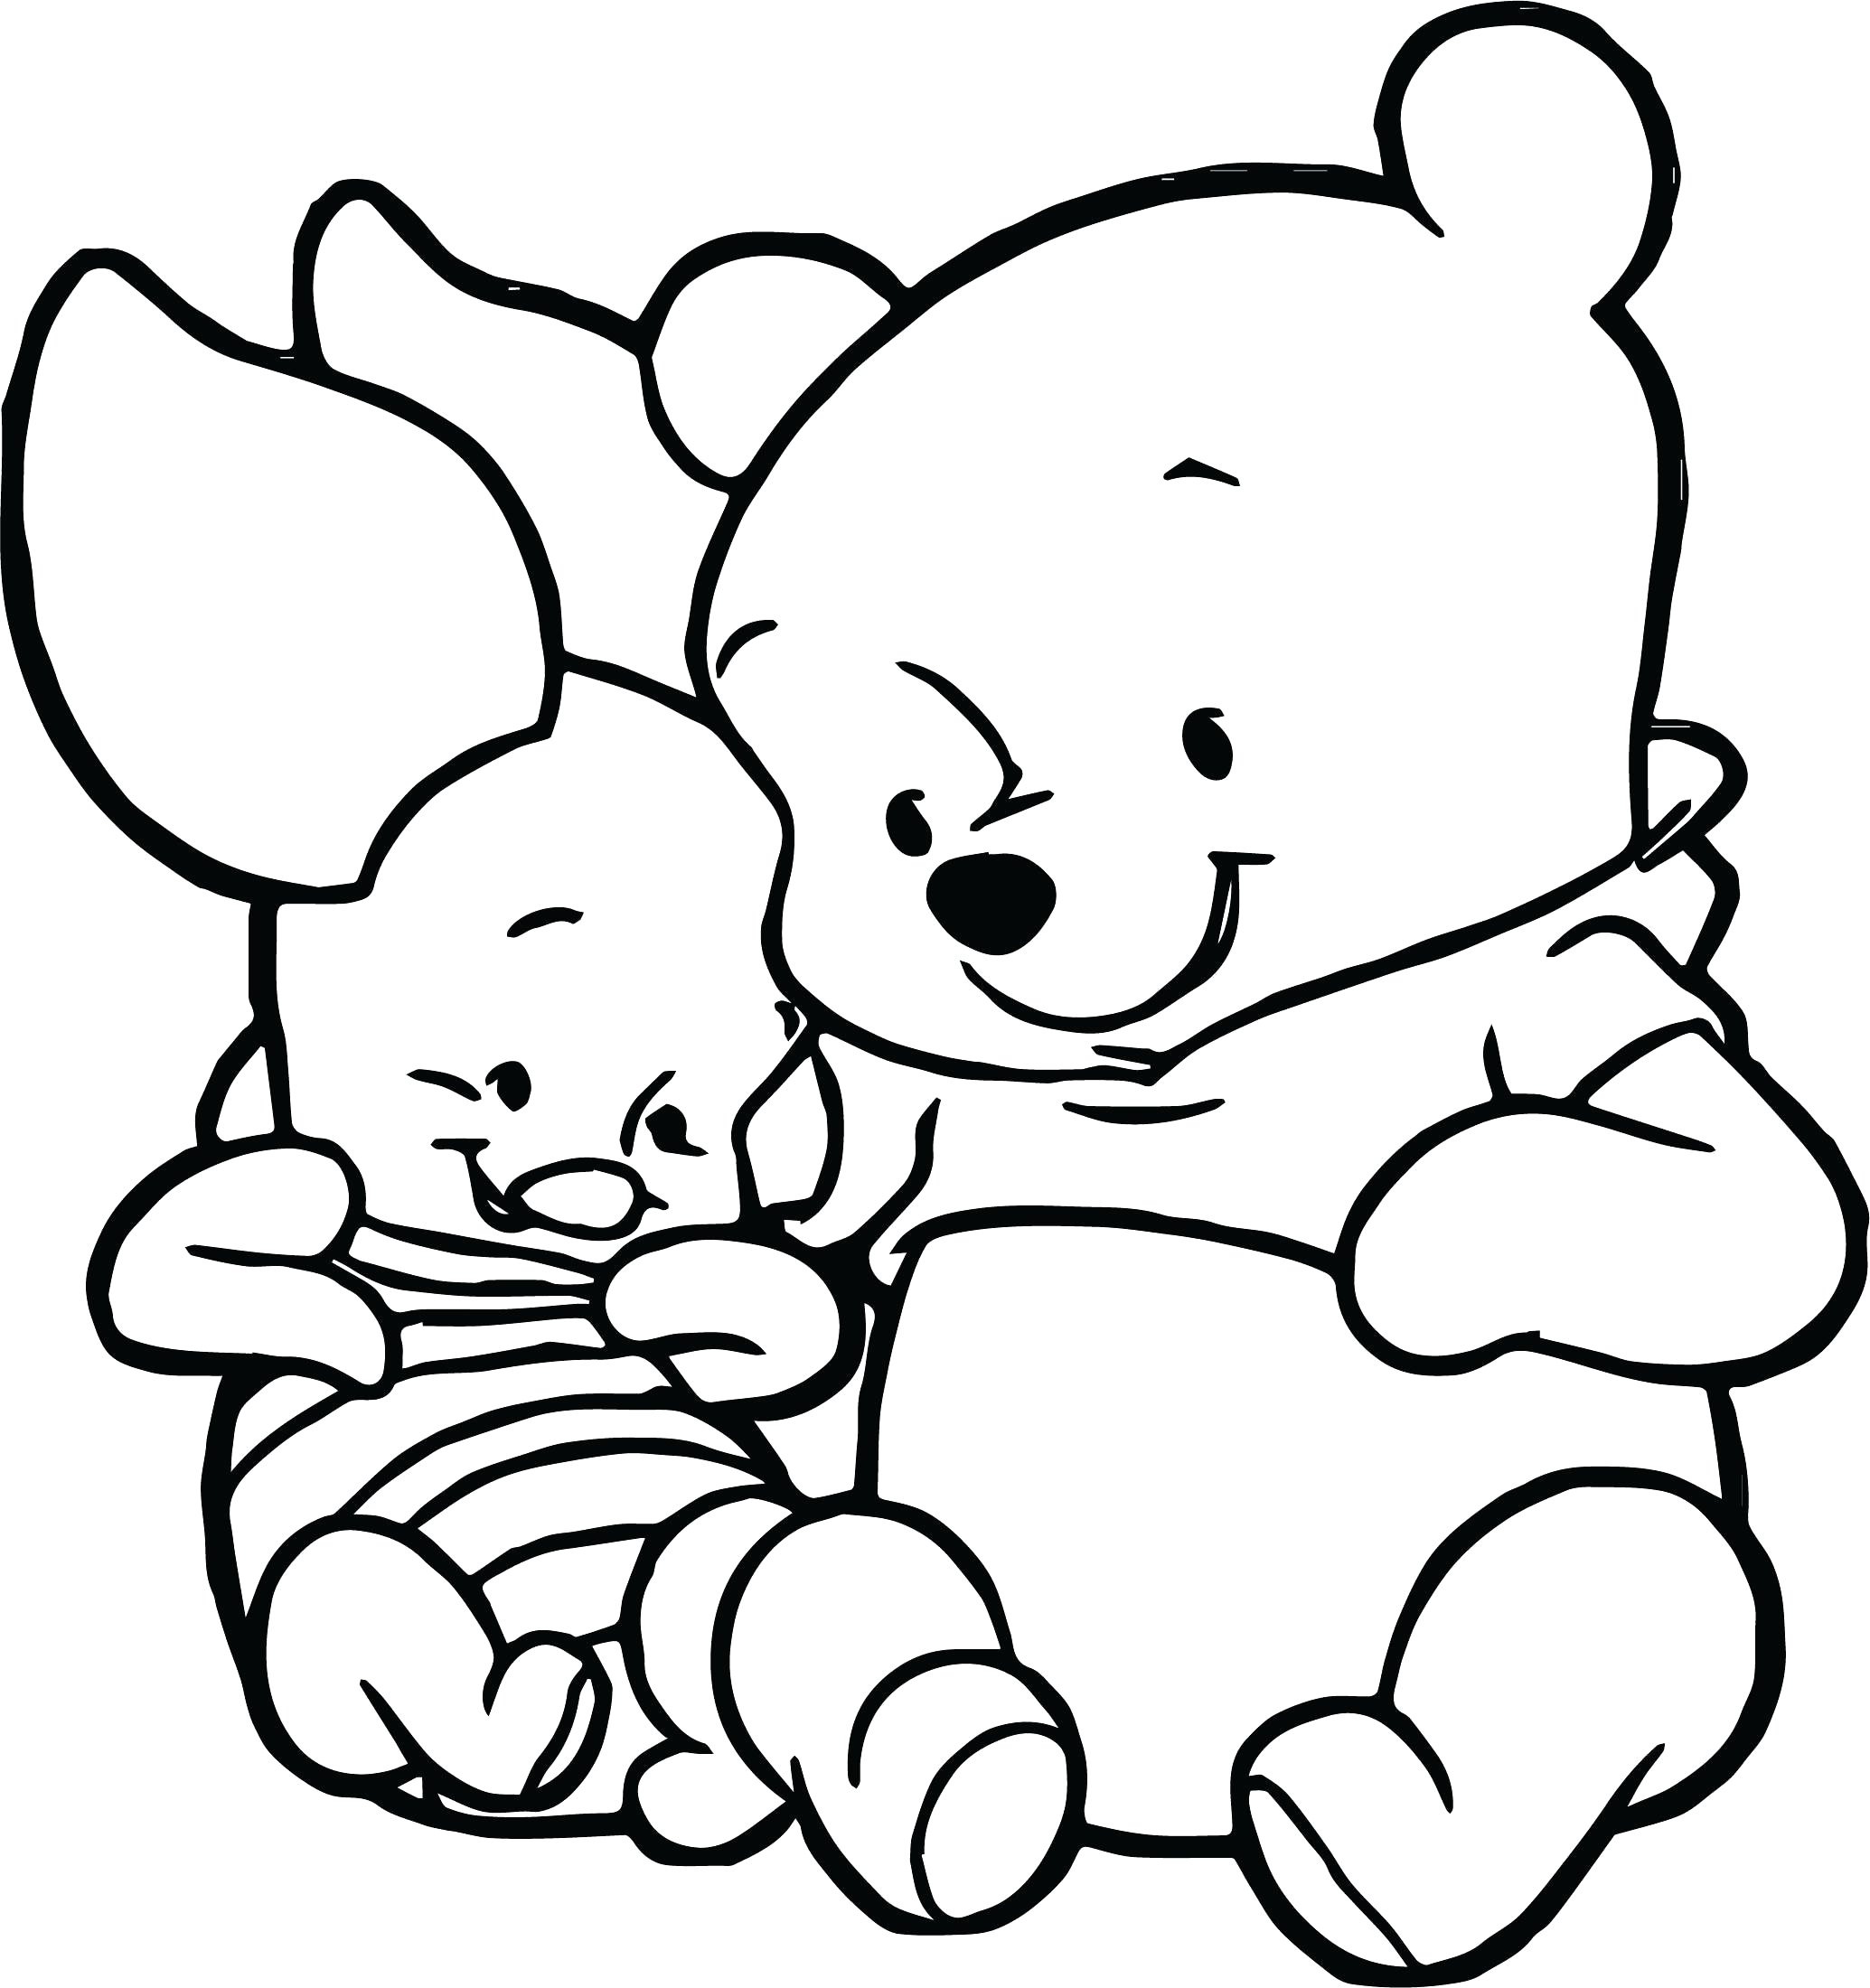 Coloring Pages Of Winnie the Pooh as Babies Winnie the Pooh Coloring Pages at Getcolorings